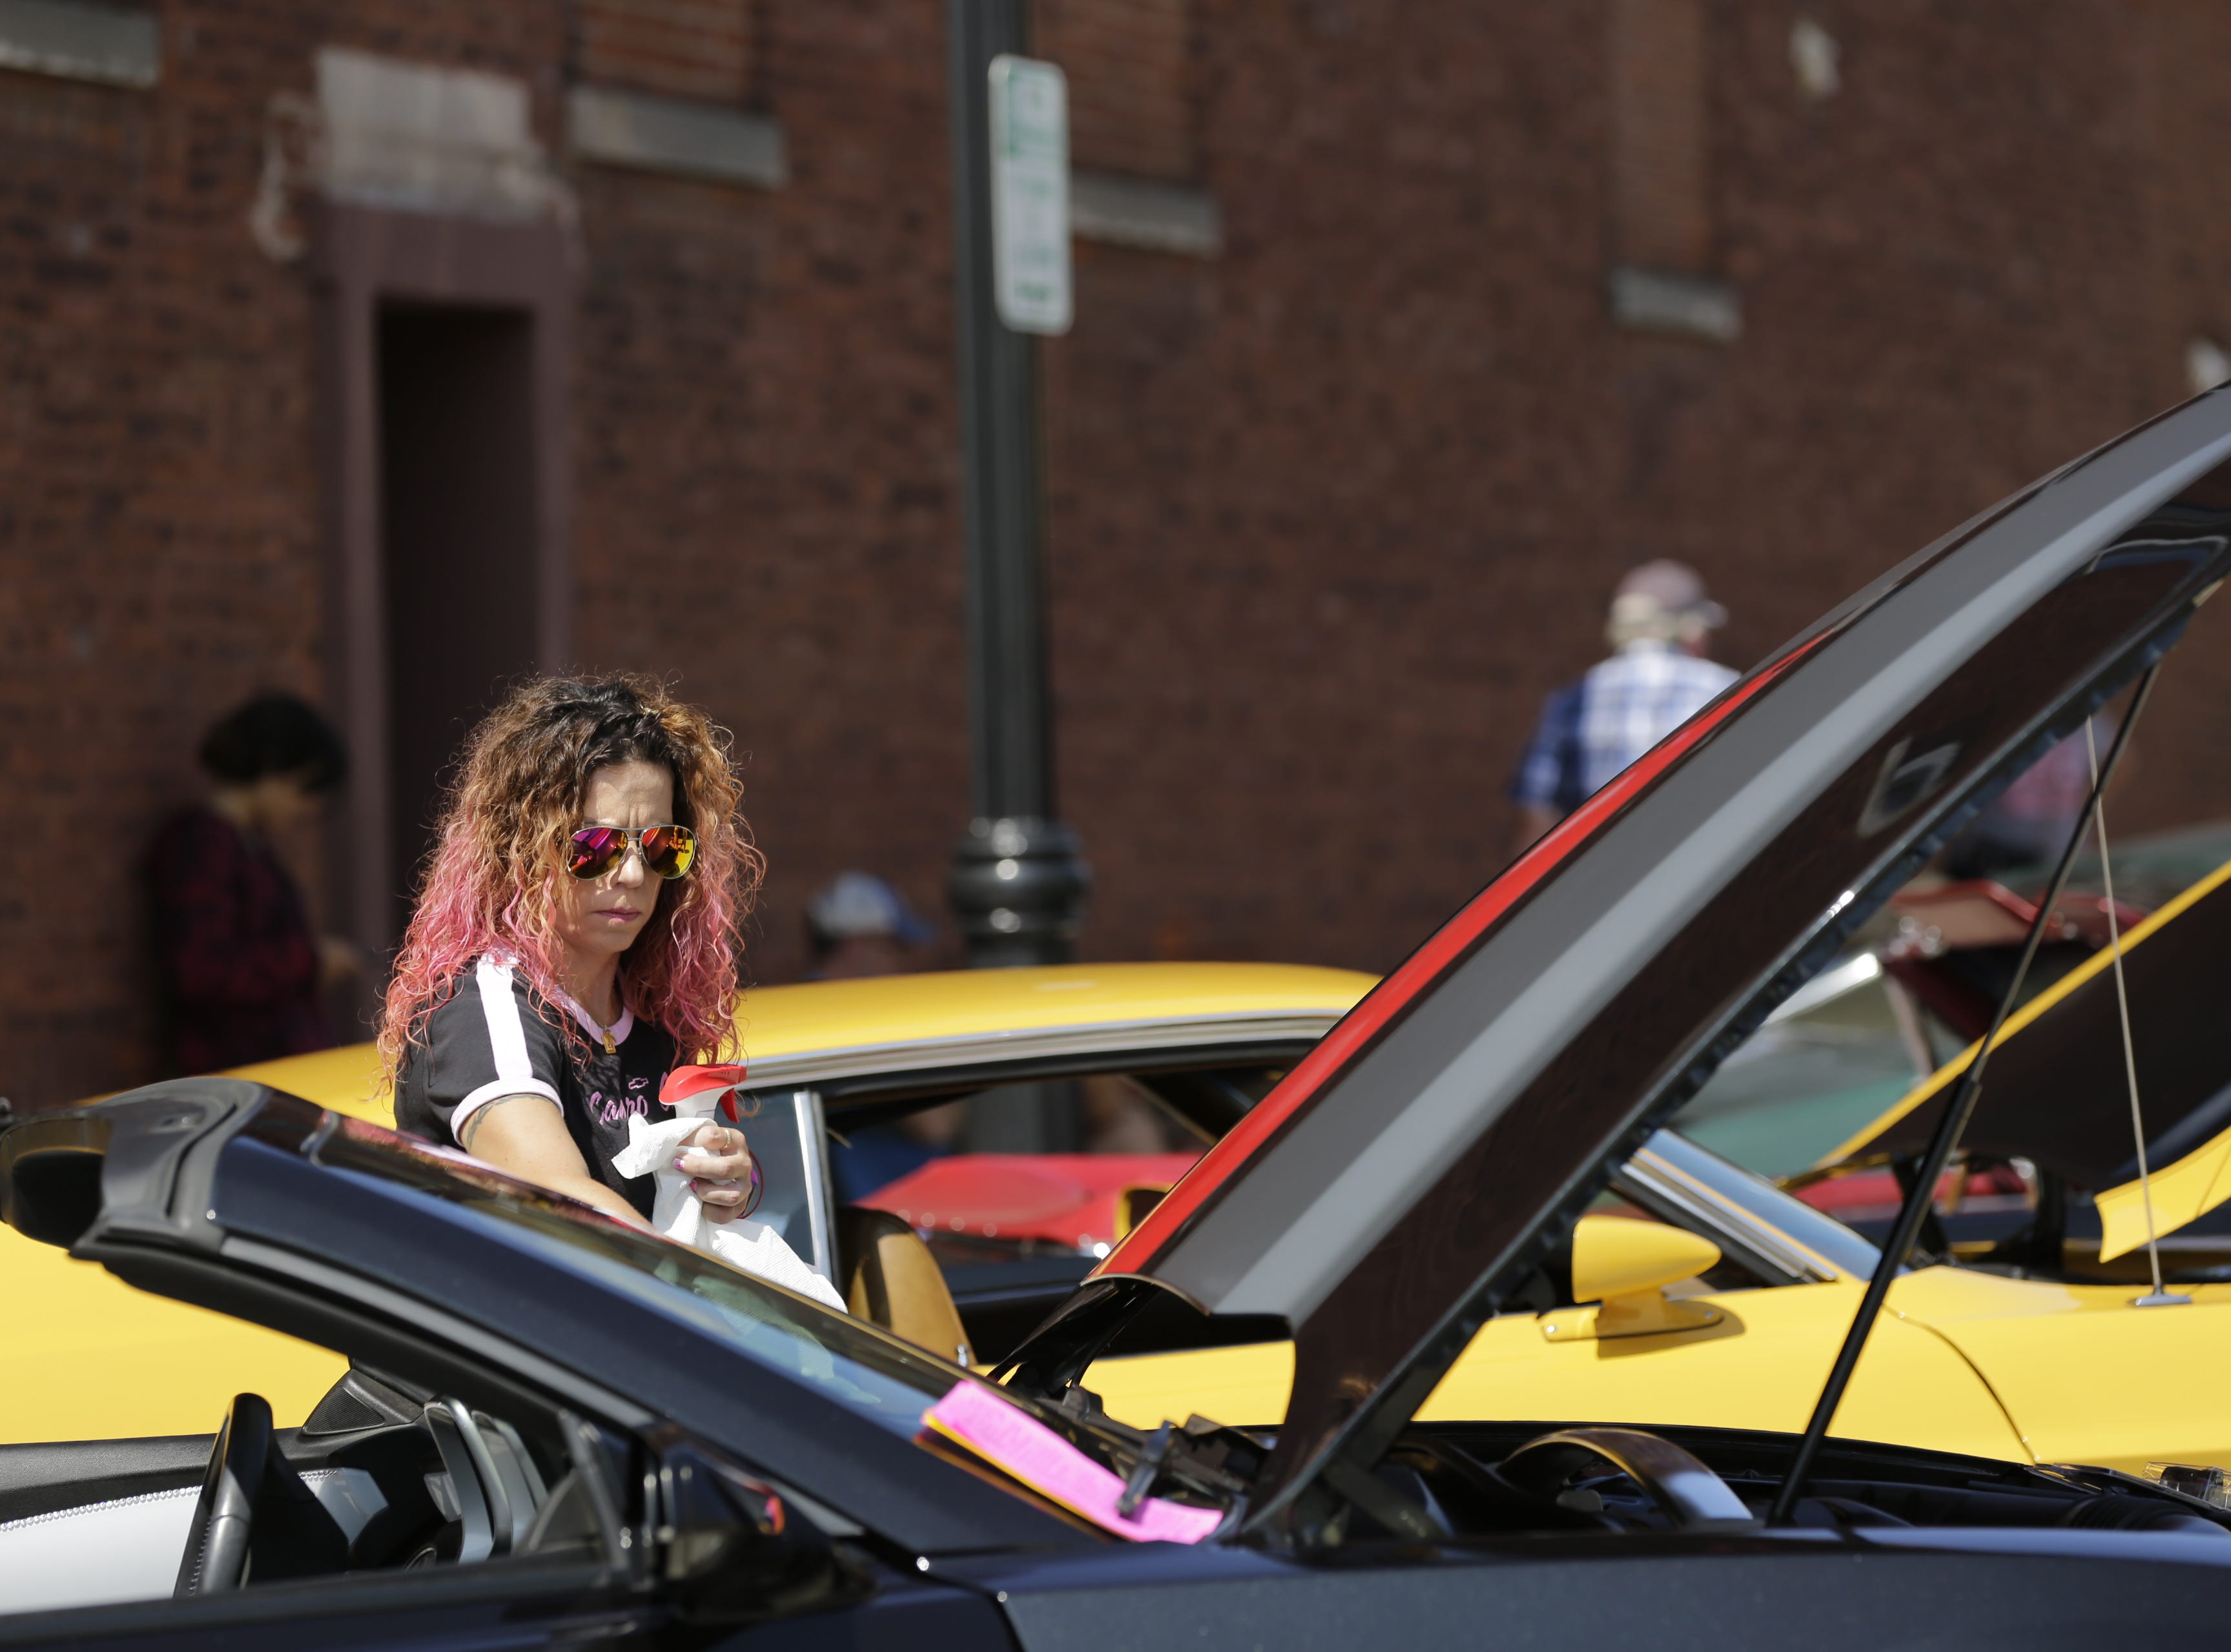 Jolene Orlowski cleans the windshield of her Camaro during the car show at Hub City Days in downtown Marshfield Saturday, July 28, 2018.